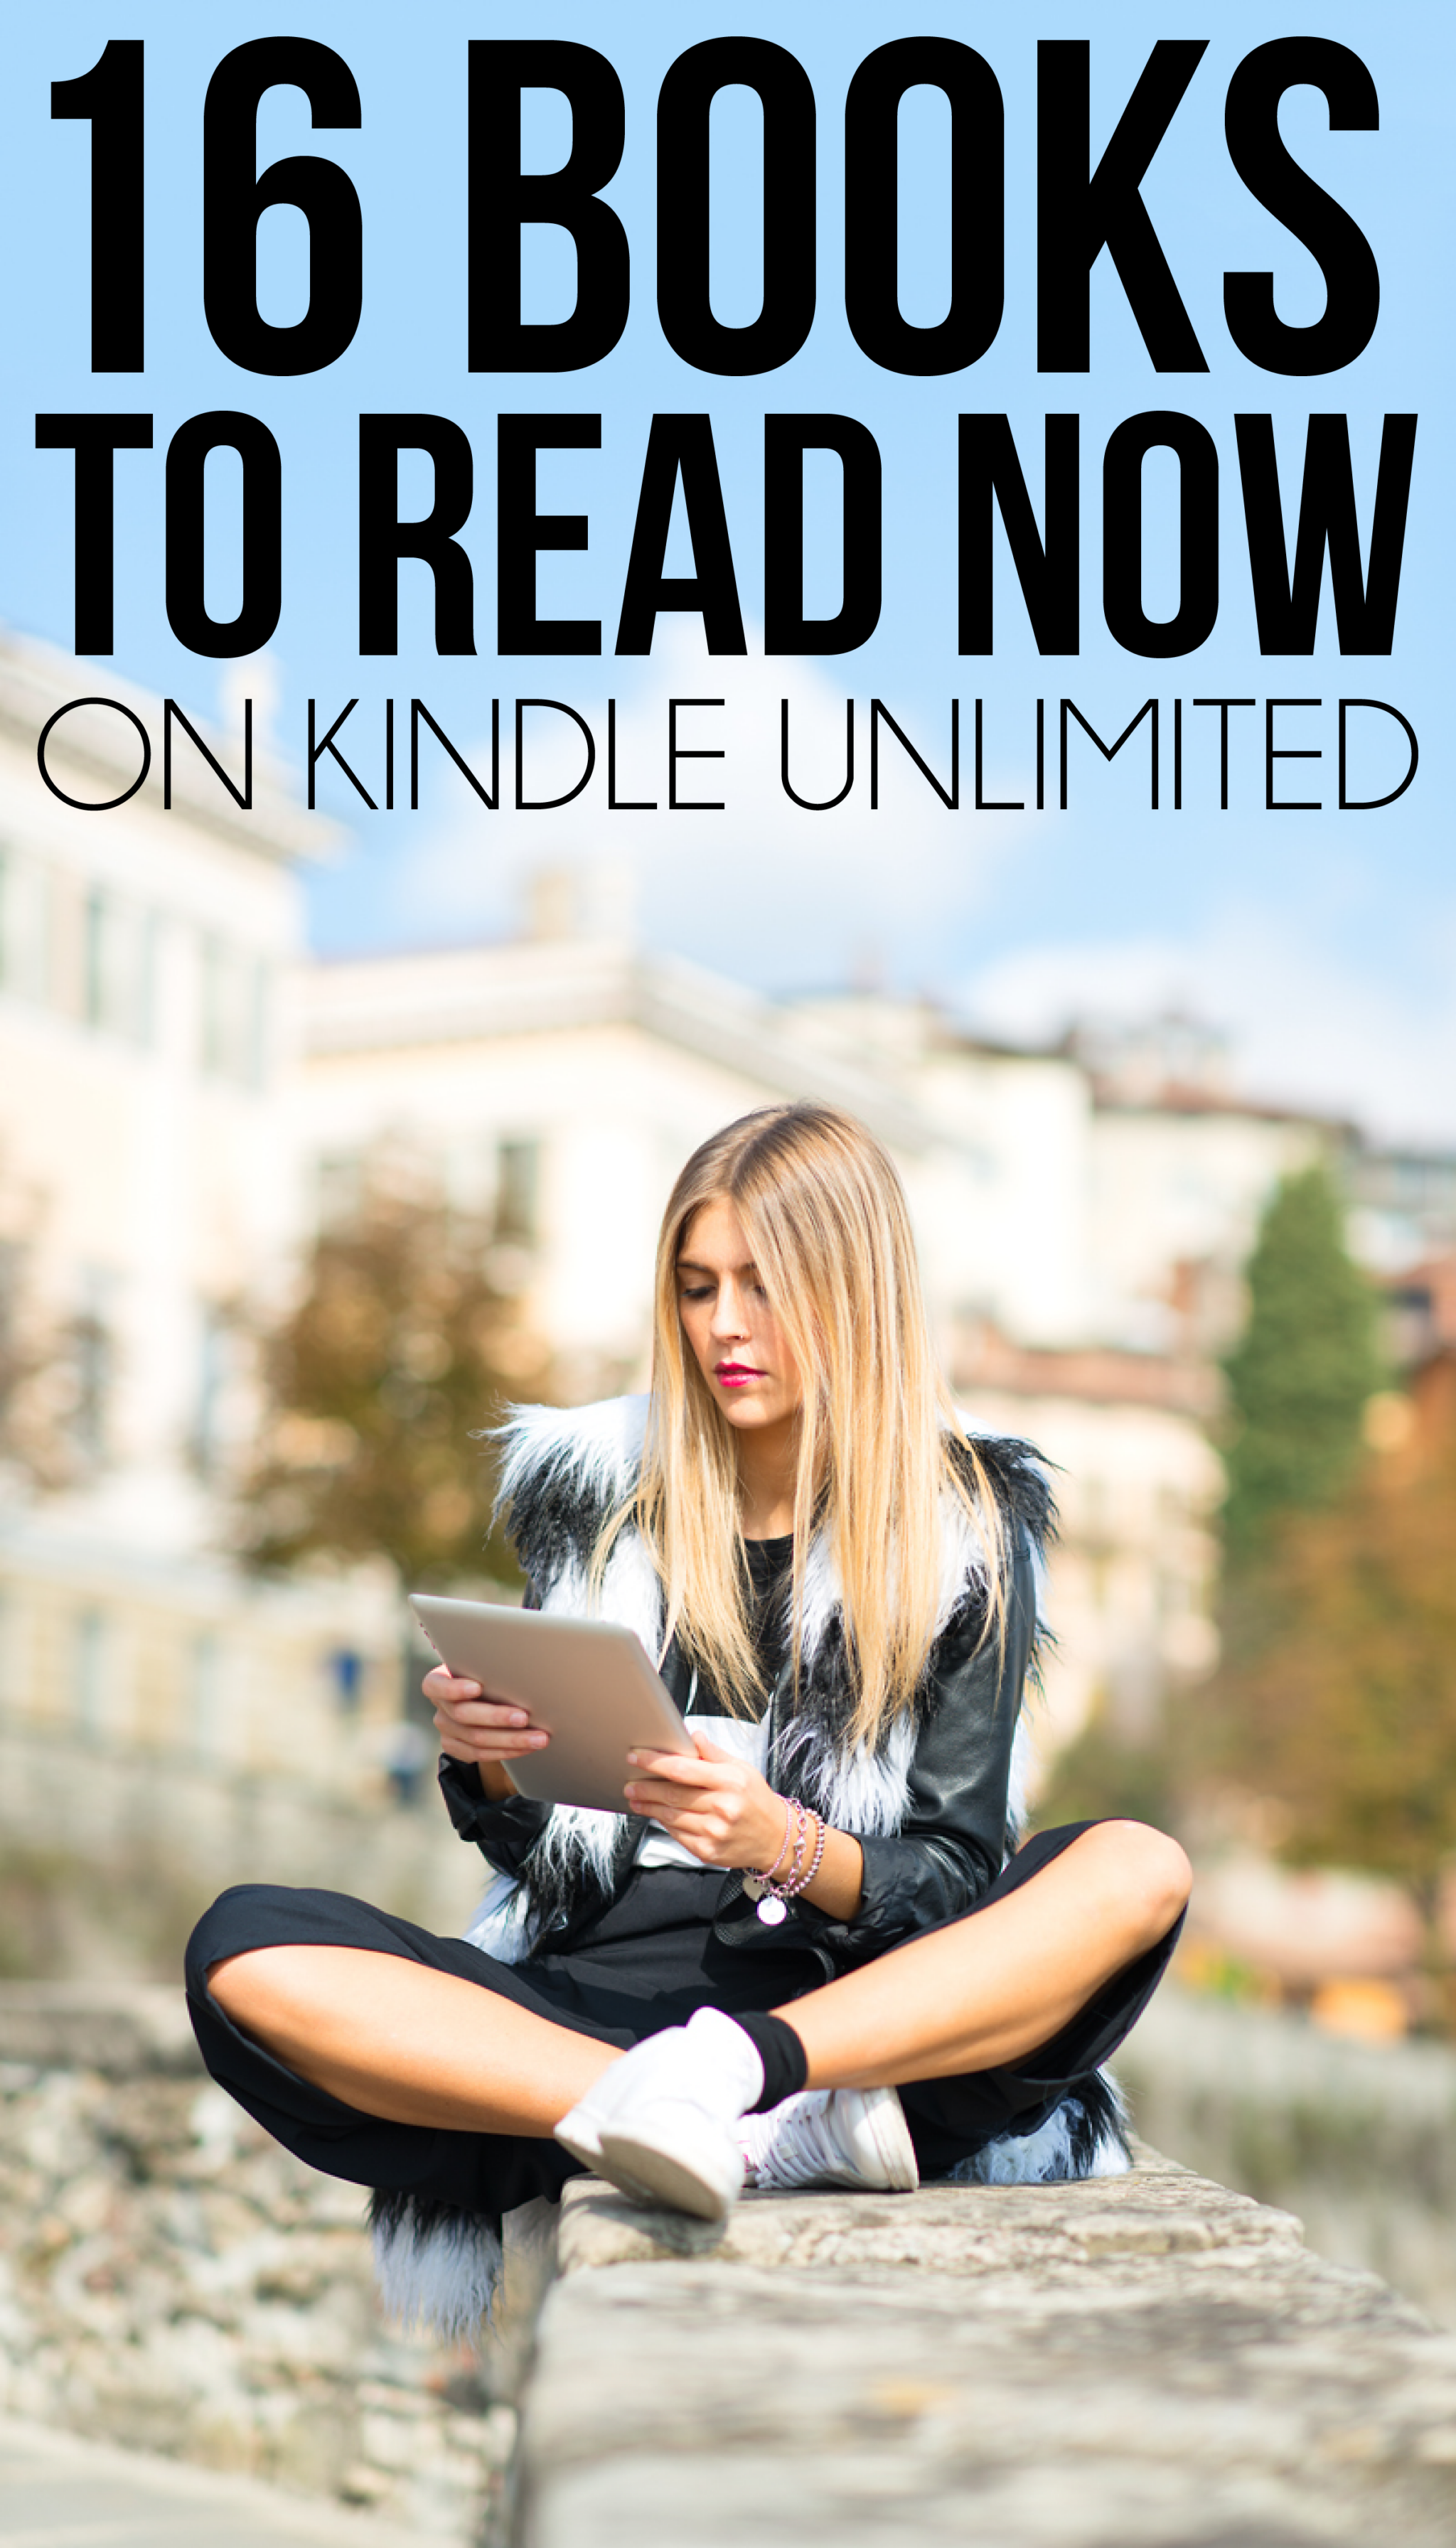 Kindle books to read this year